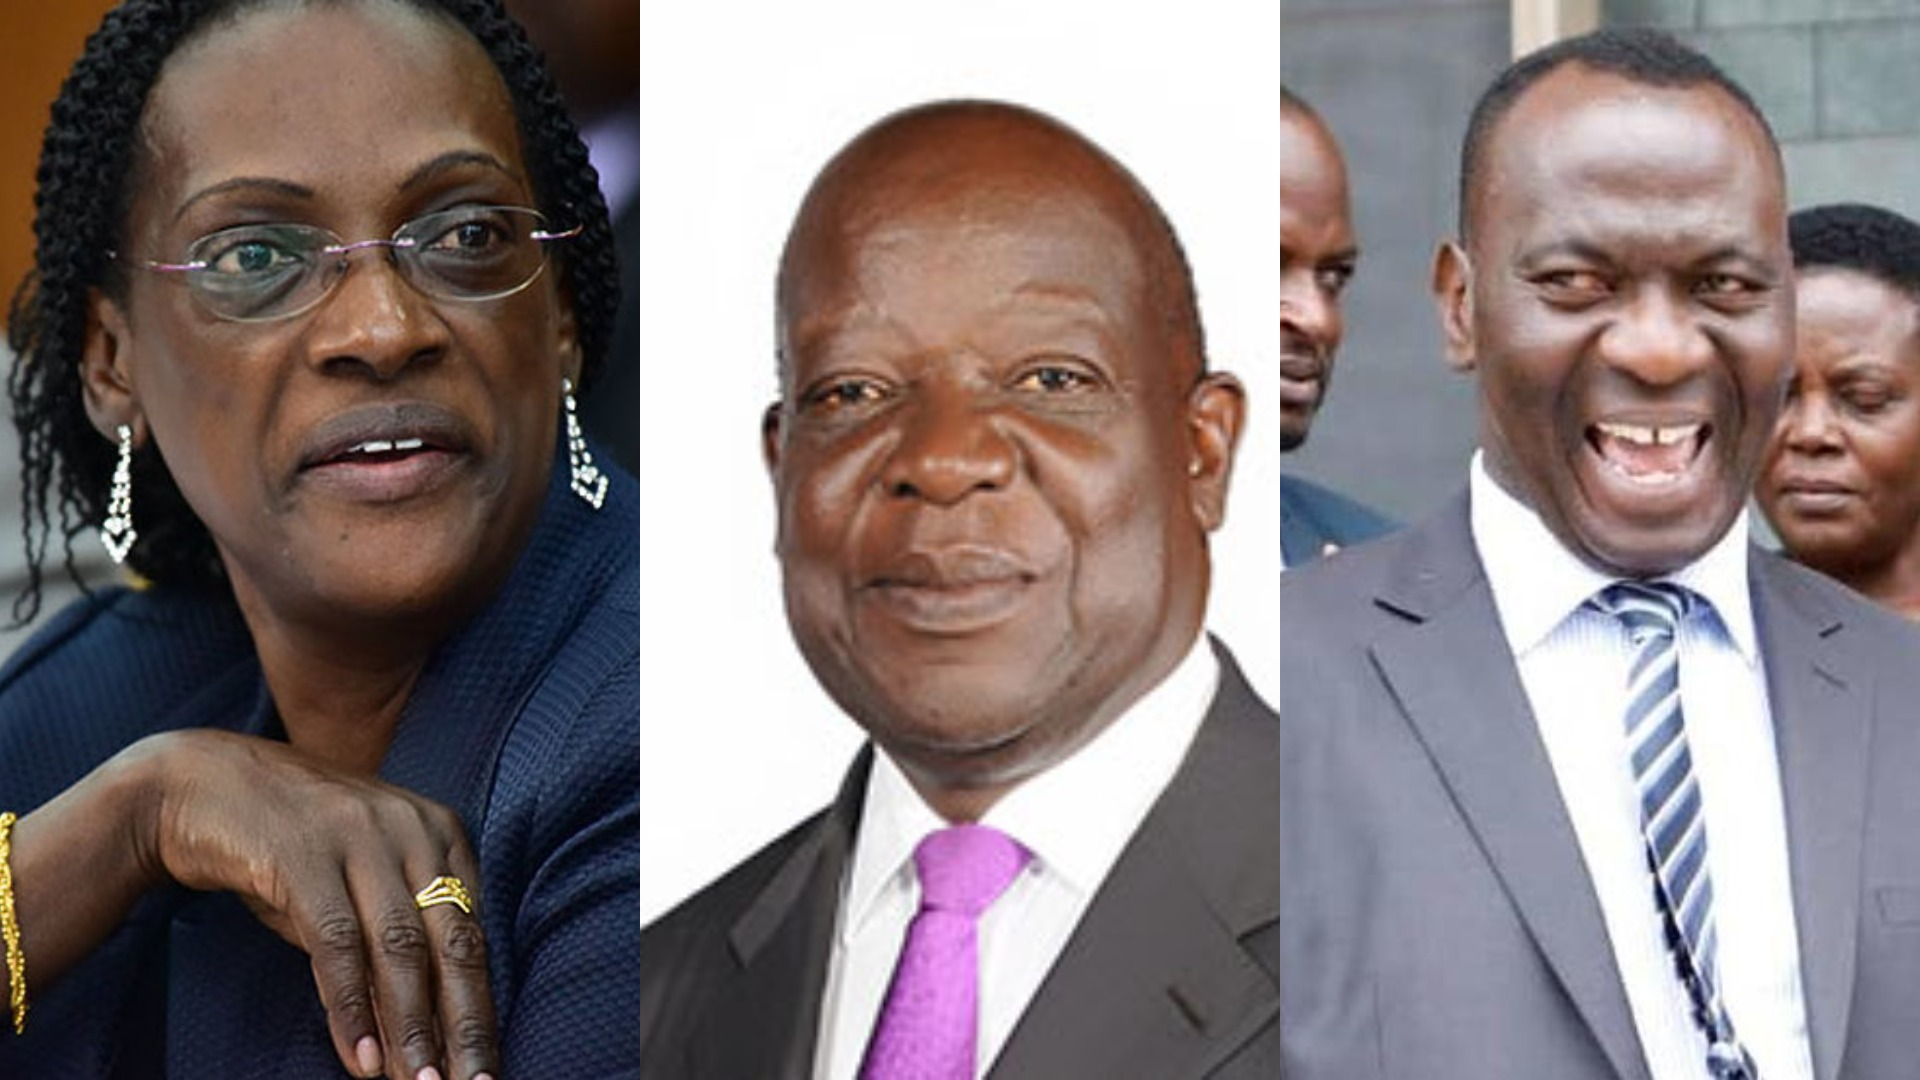 Bank of Uganda trio, Ms Bagyenda, Mr Benedict Ssekabira and Mr Katimbo Mugwanya, that managed the closure of Crane Bank, has failed to give a comprehensive report  detailing the undercapitalisation of the defunct Crane Bank (FILE PHOTO)